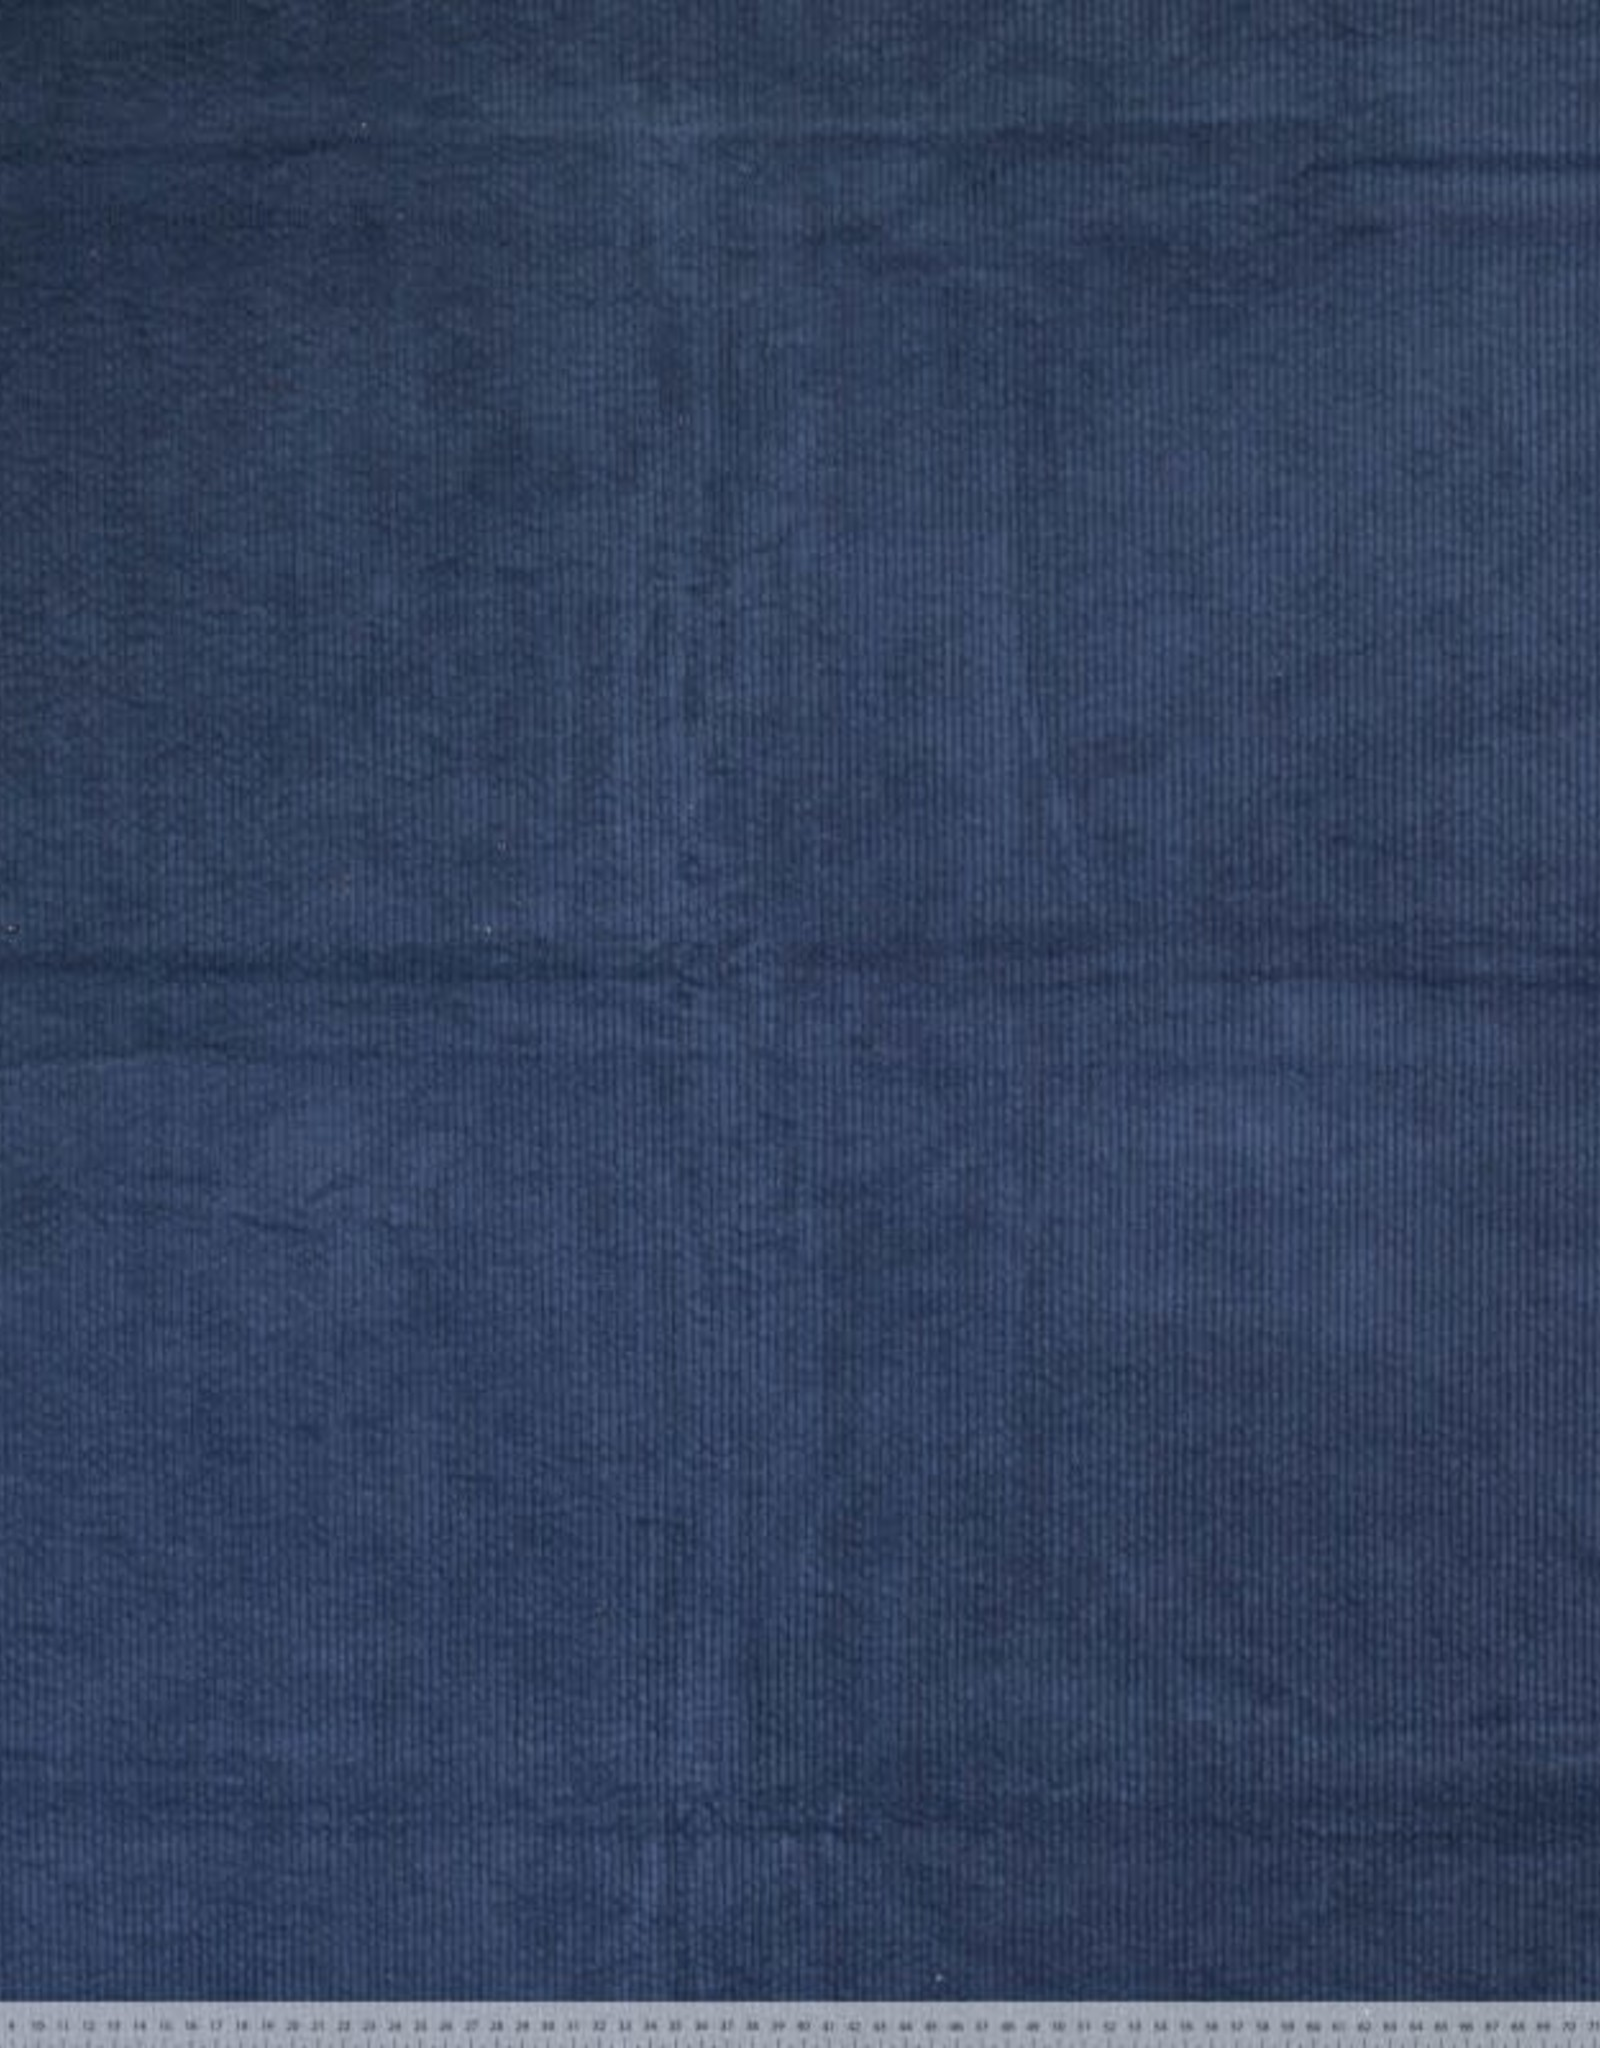 Corduroy bubble wash dark denim